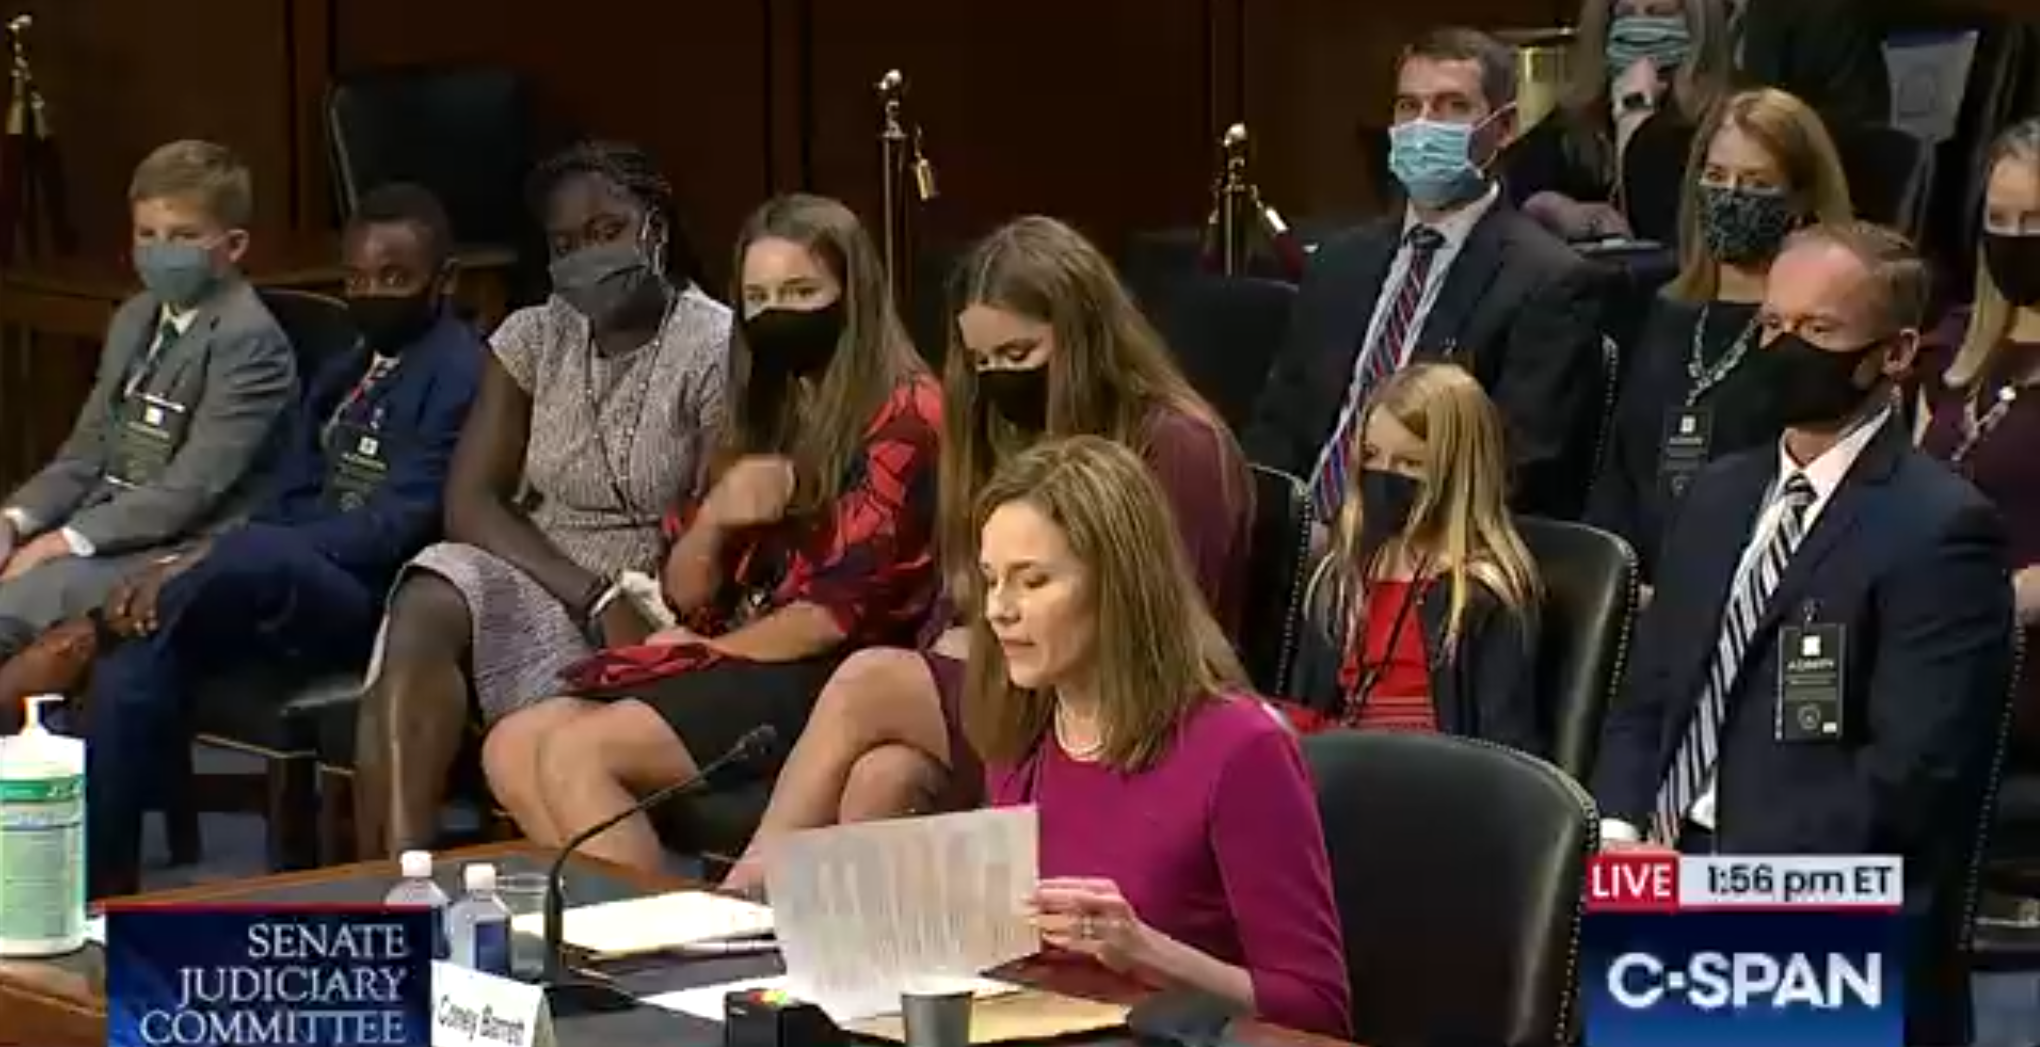 Amy Coney Barrett and her family at the hearing